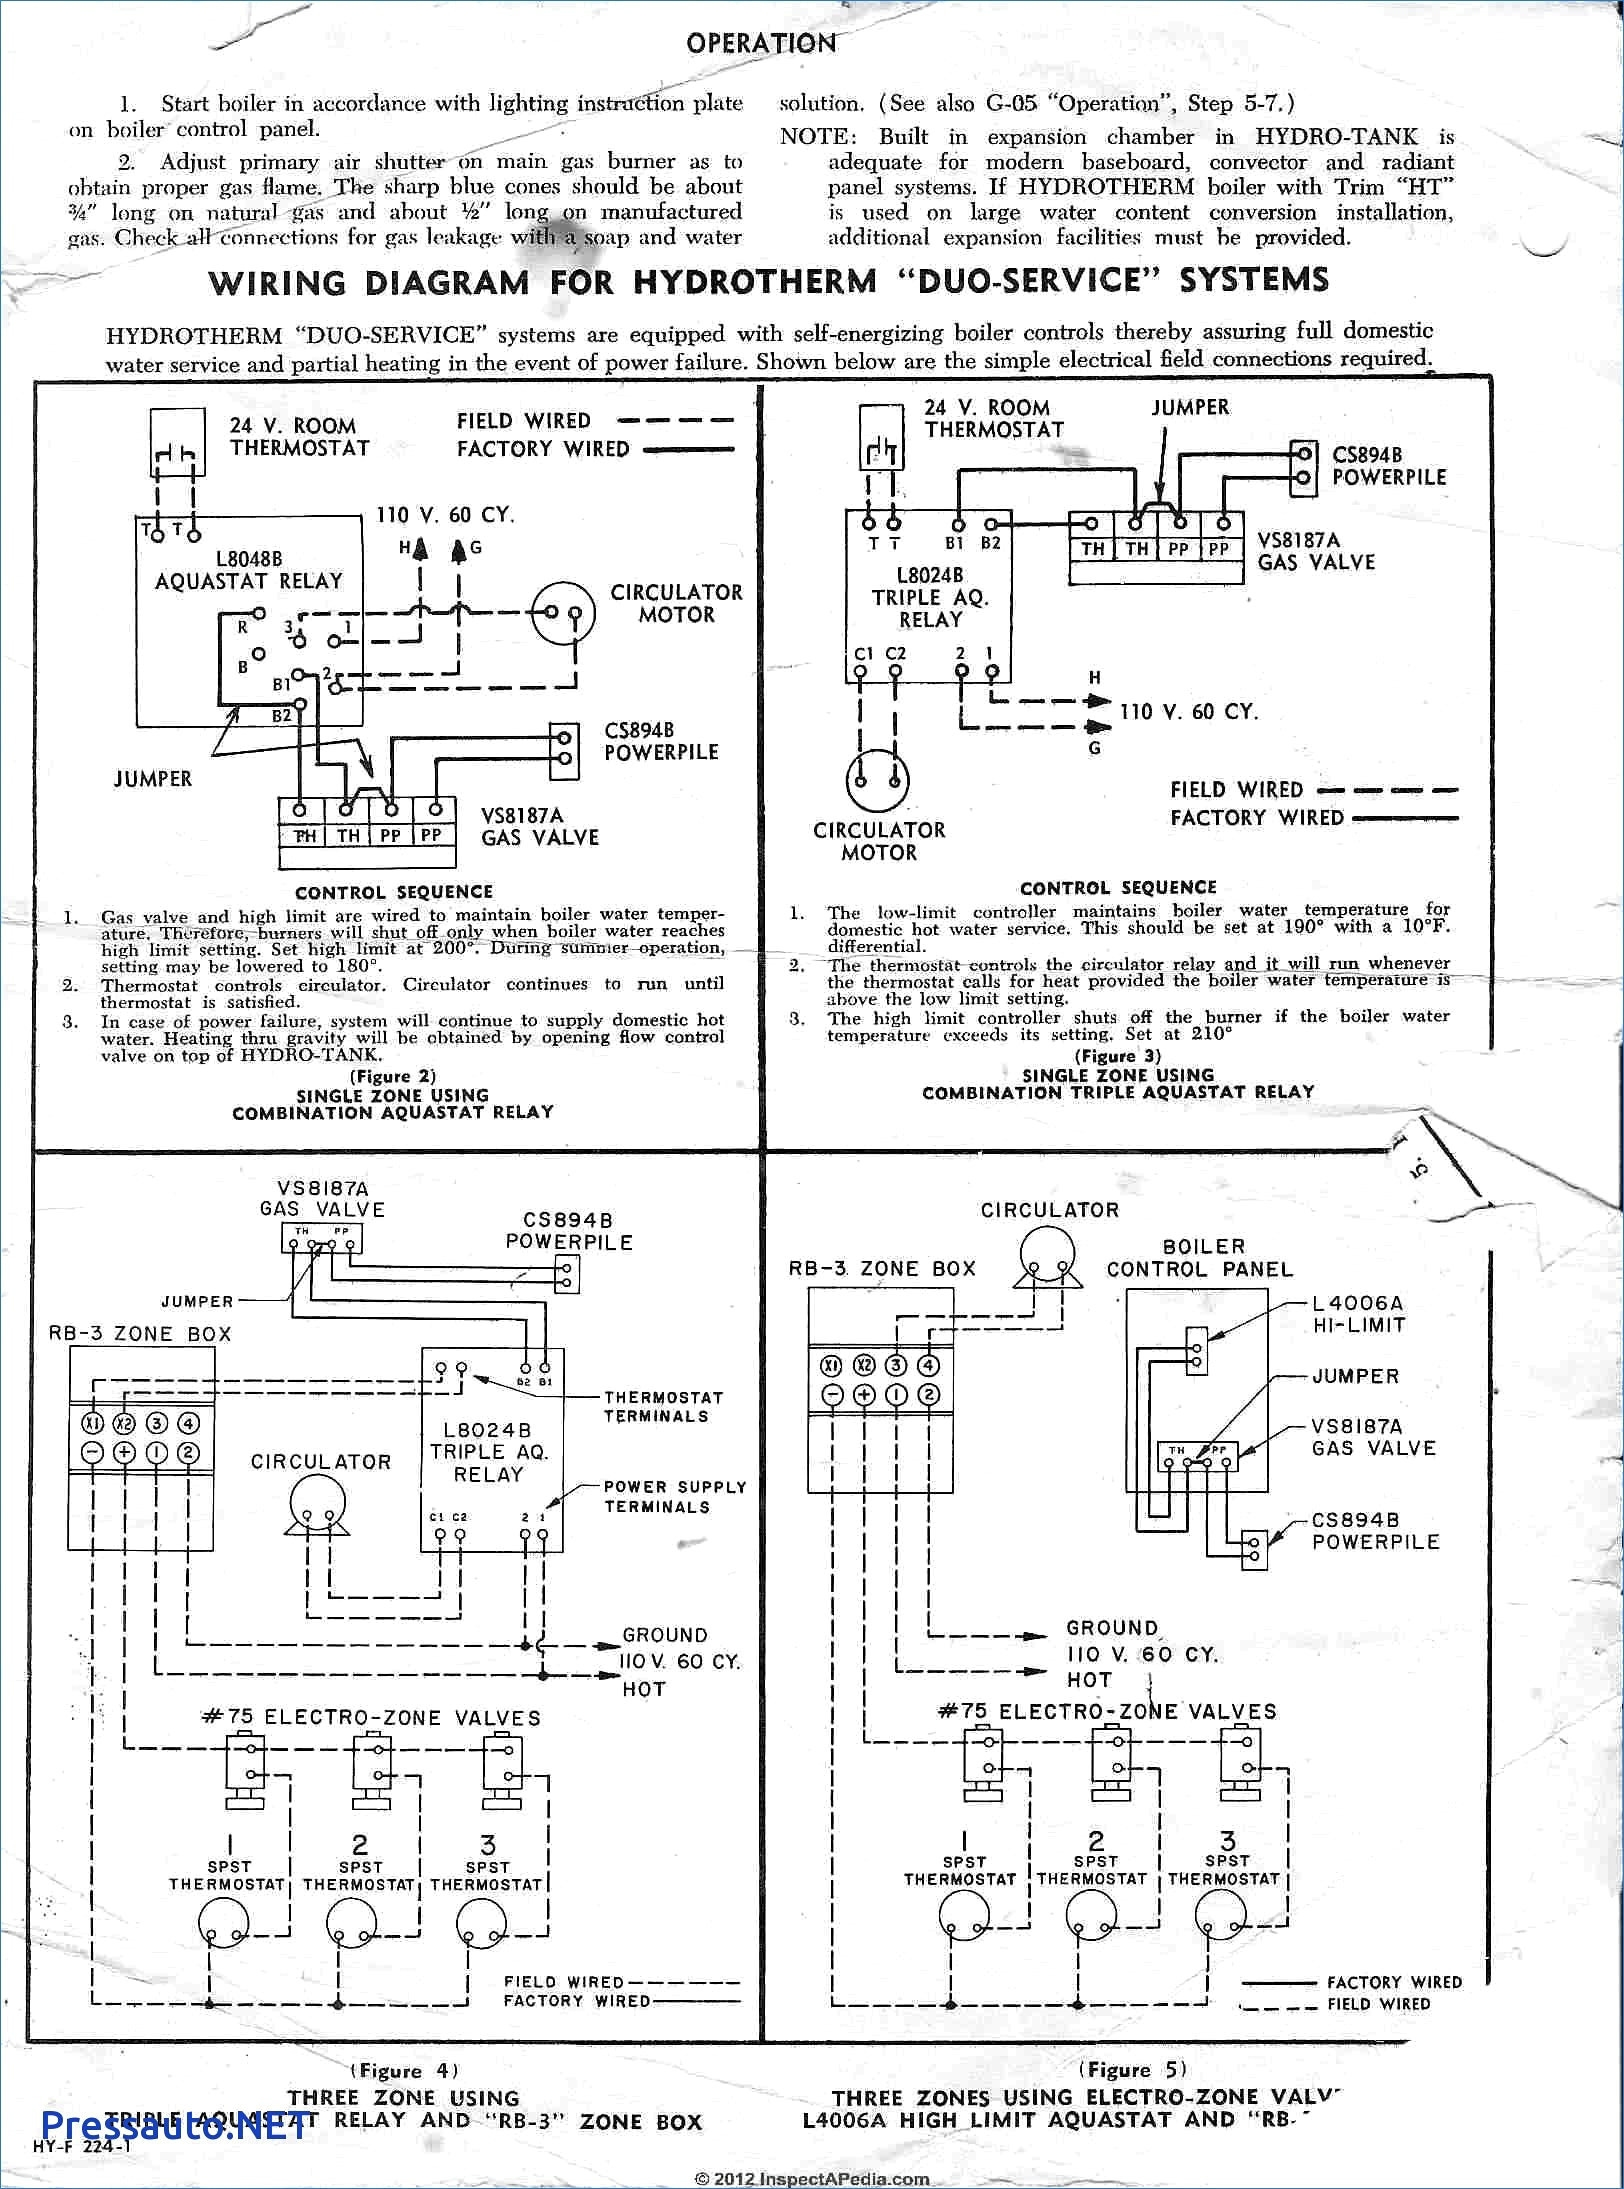 white rodgers 1311 102 wiring diagram Download-white rodgers relay wiring diagram free image about wiring rh insidersa co 15-s